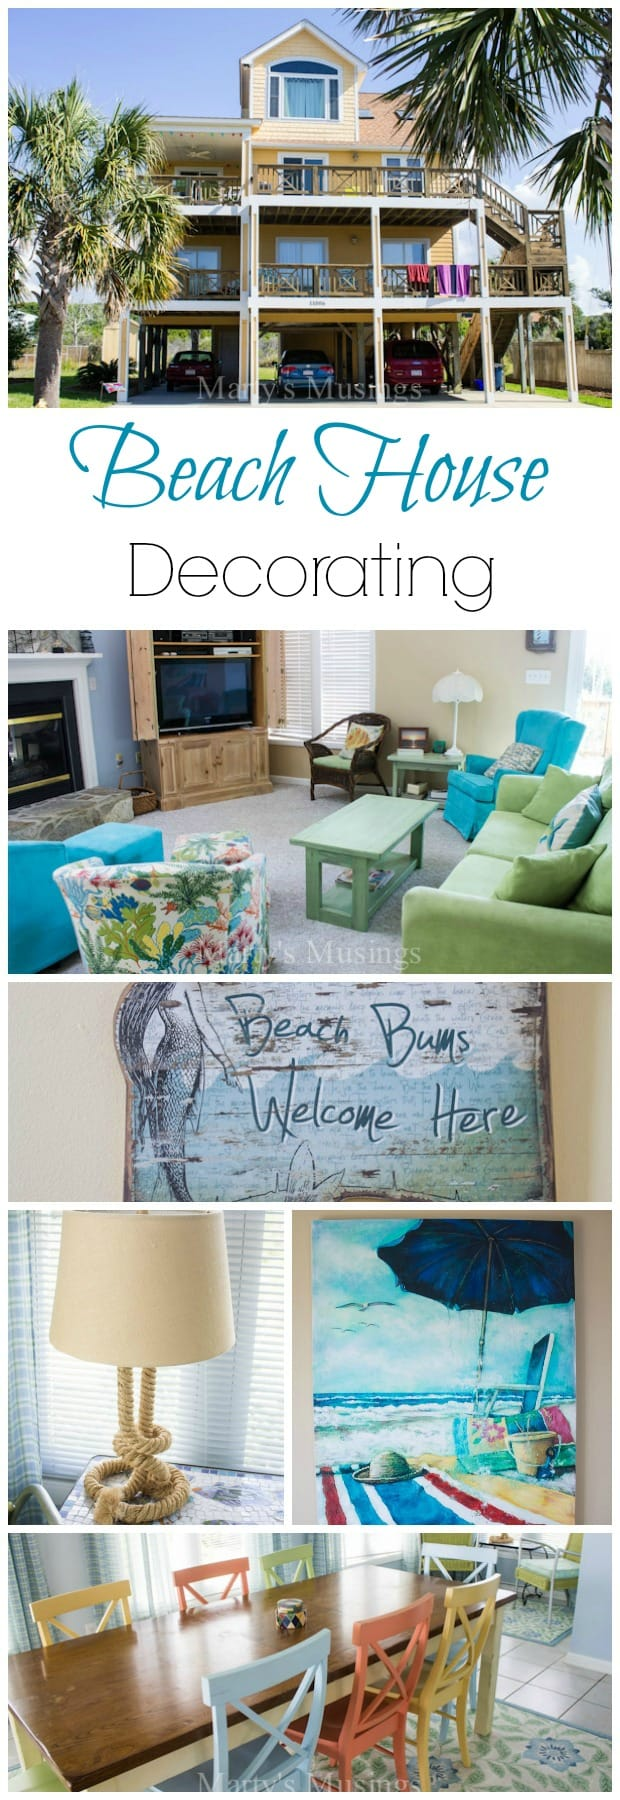 beach house decorating ideas related keywords suggestions beach